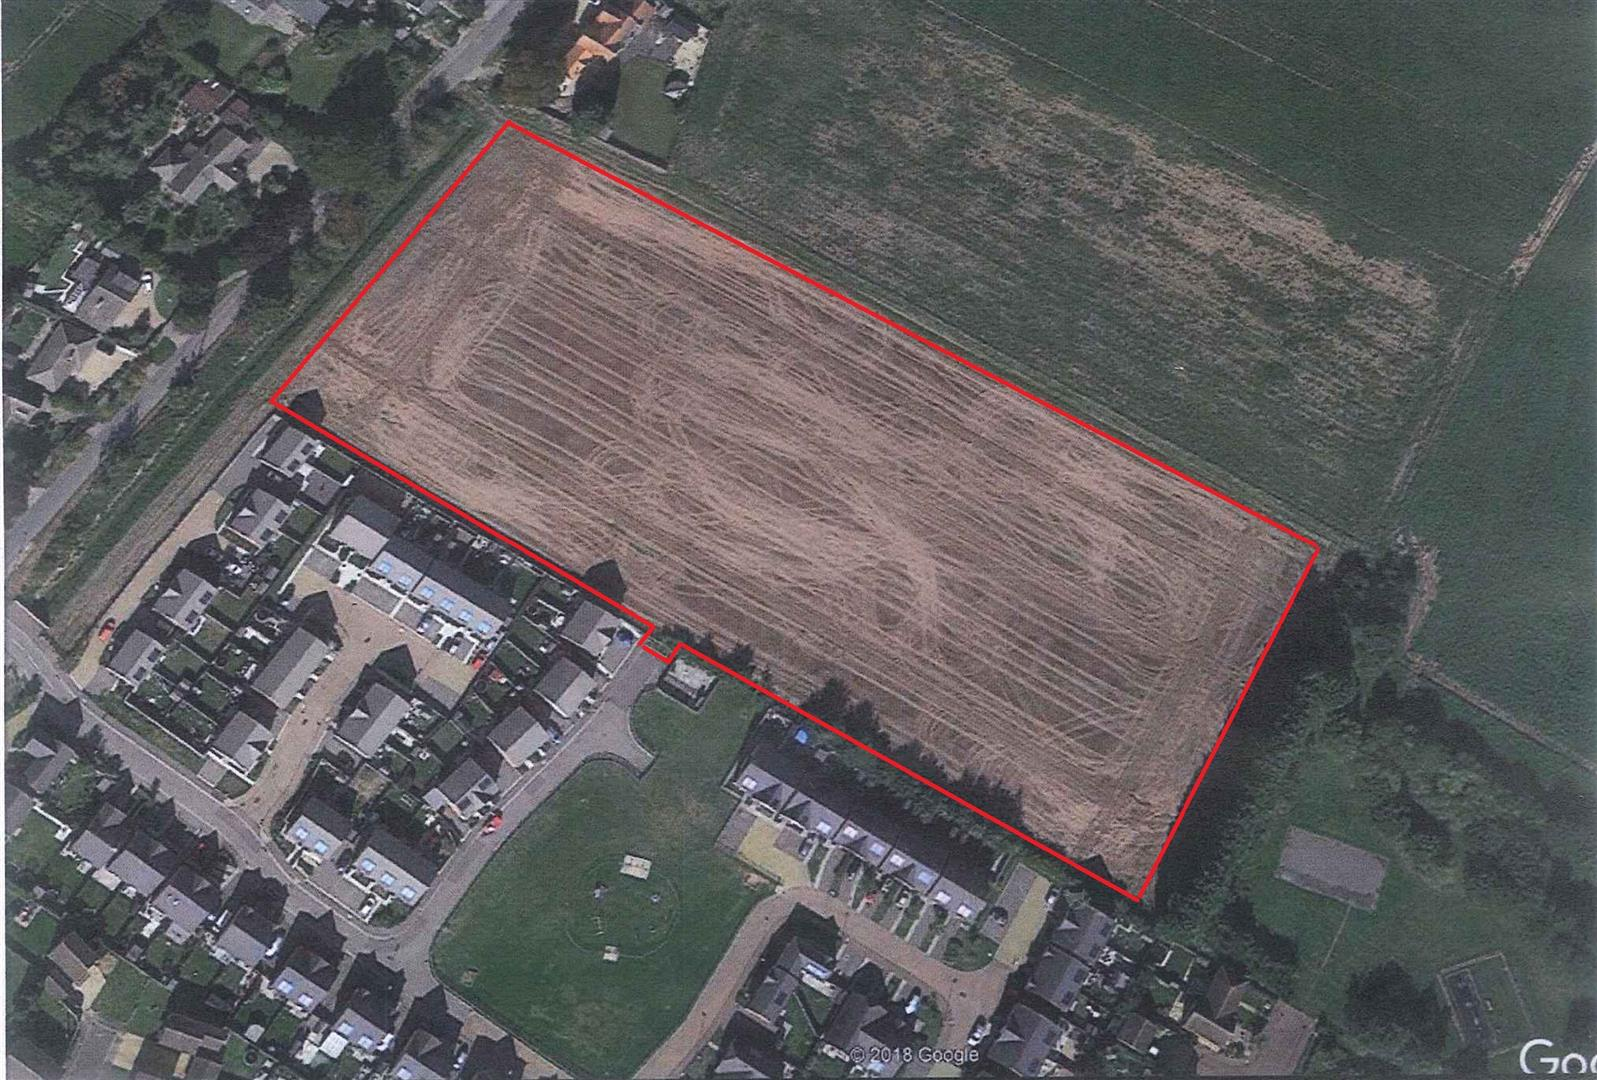 Land (commercial) for sale in Long Sutton Spalding, PE12 9HG, PE12